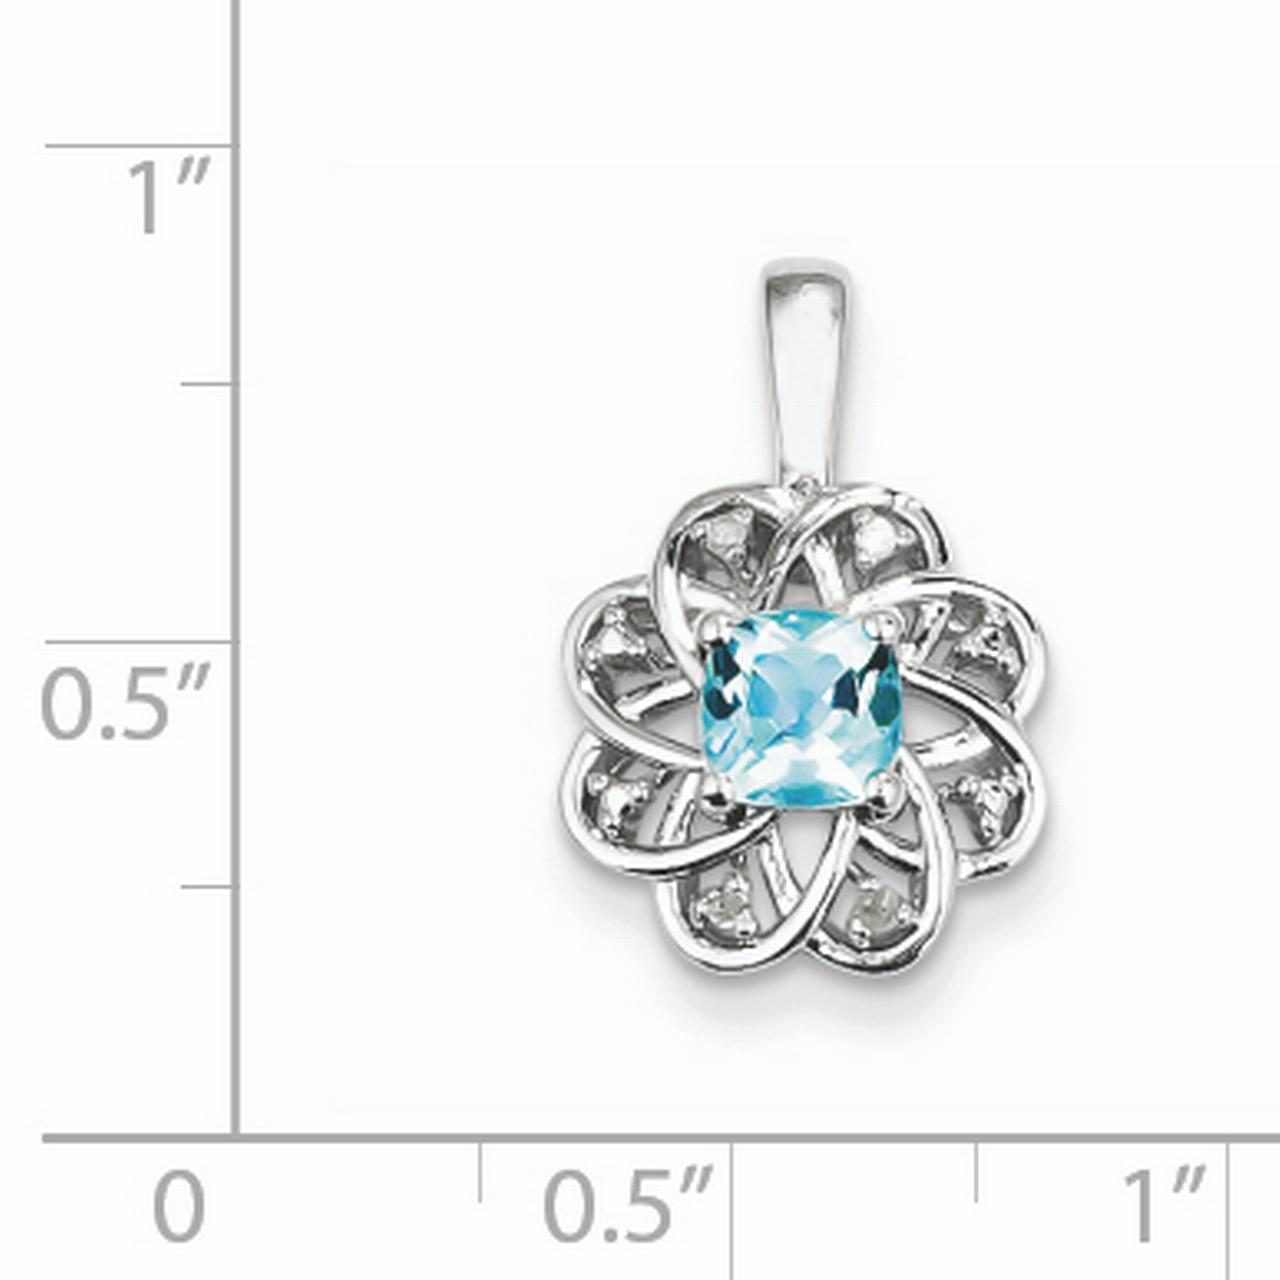 925 Sterling Silver Rhodium Plated Diamond and Light Blue Topaz Pendant - image 1 of 2